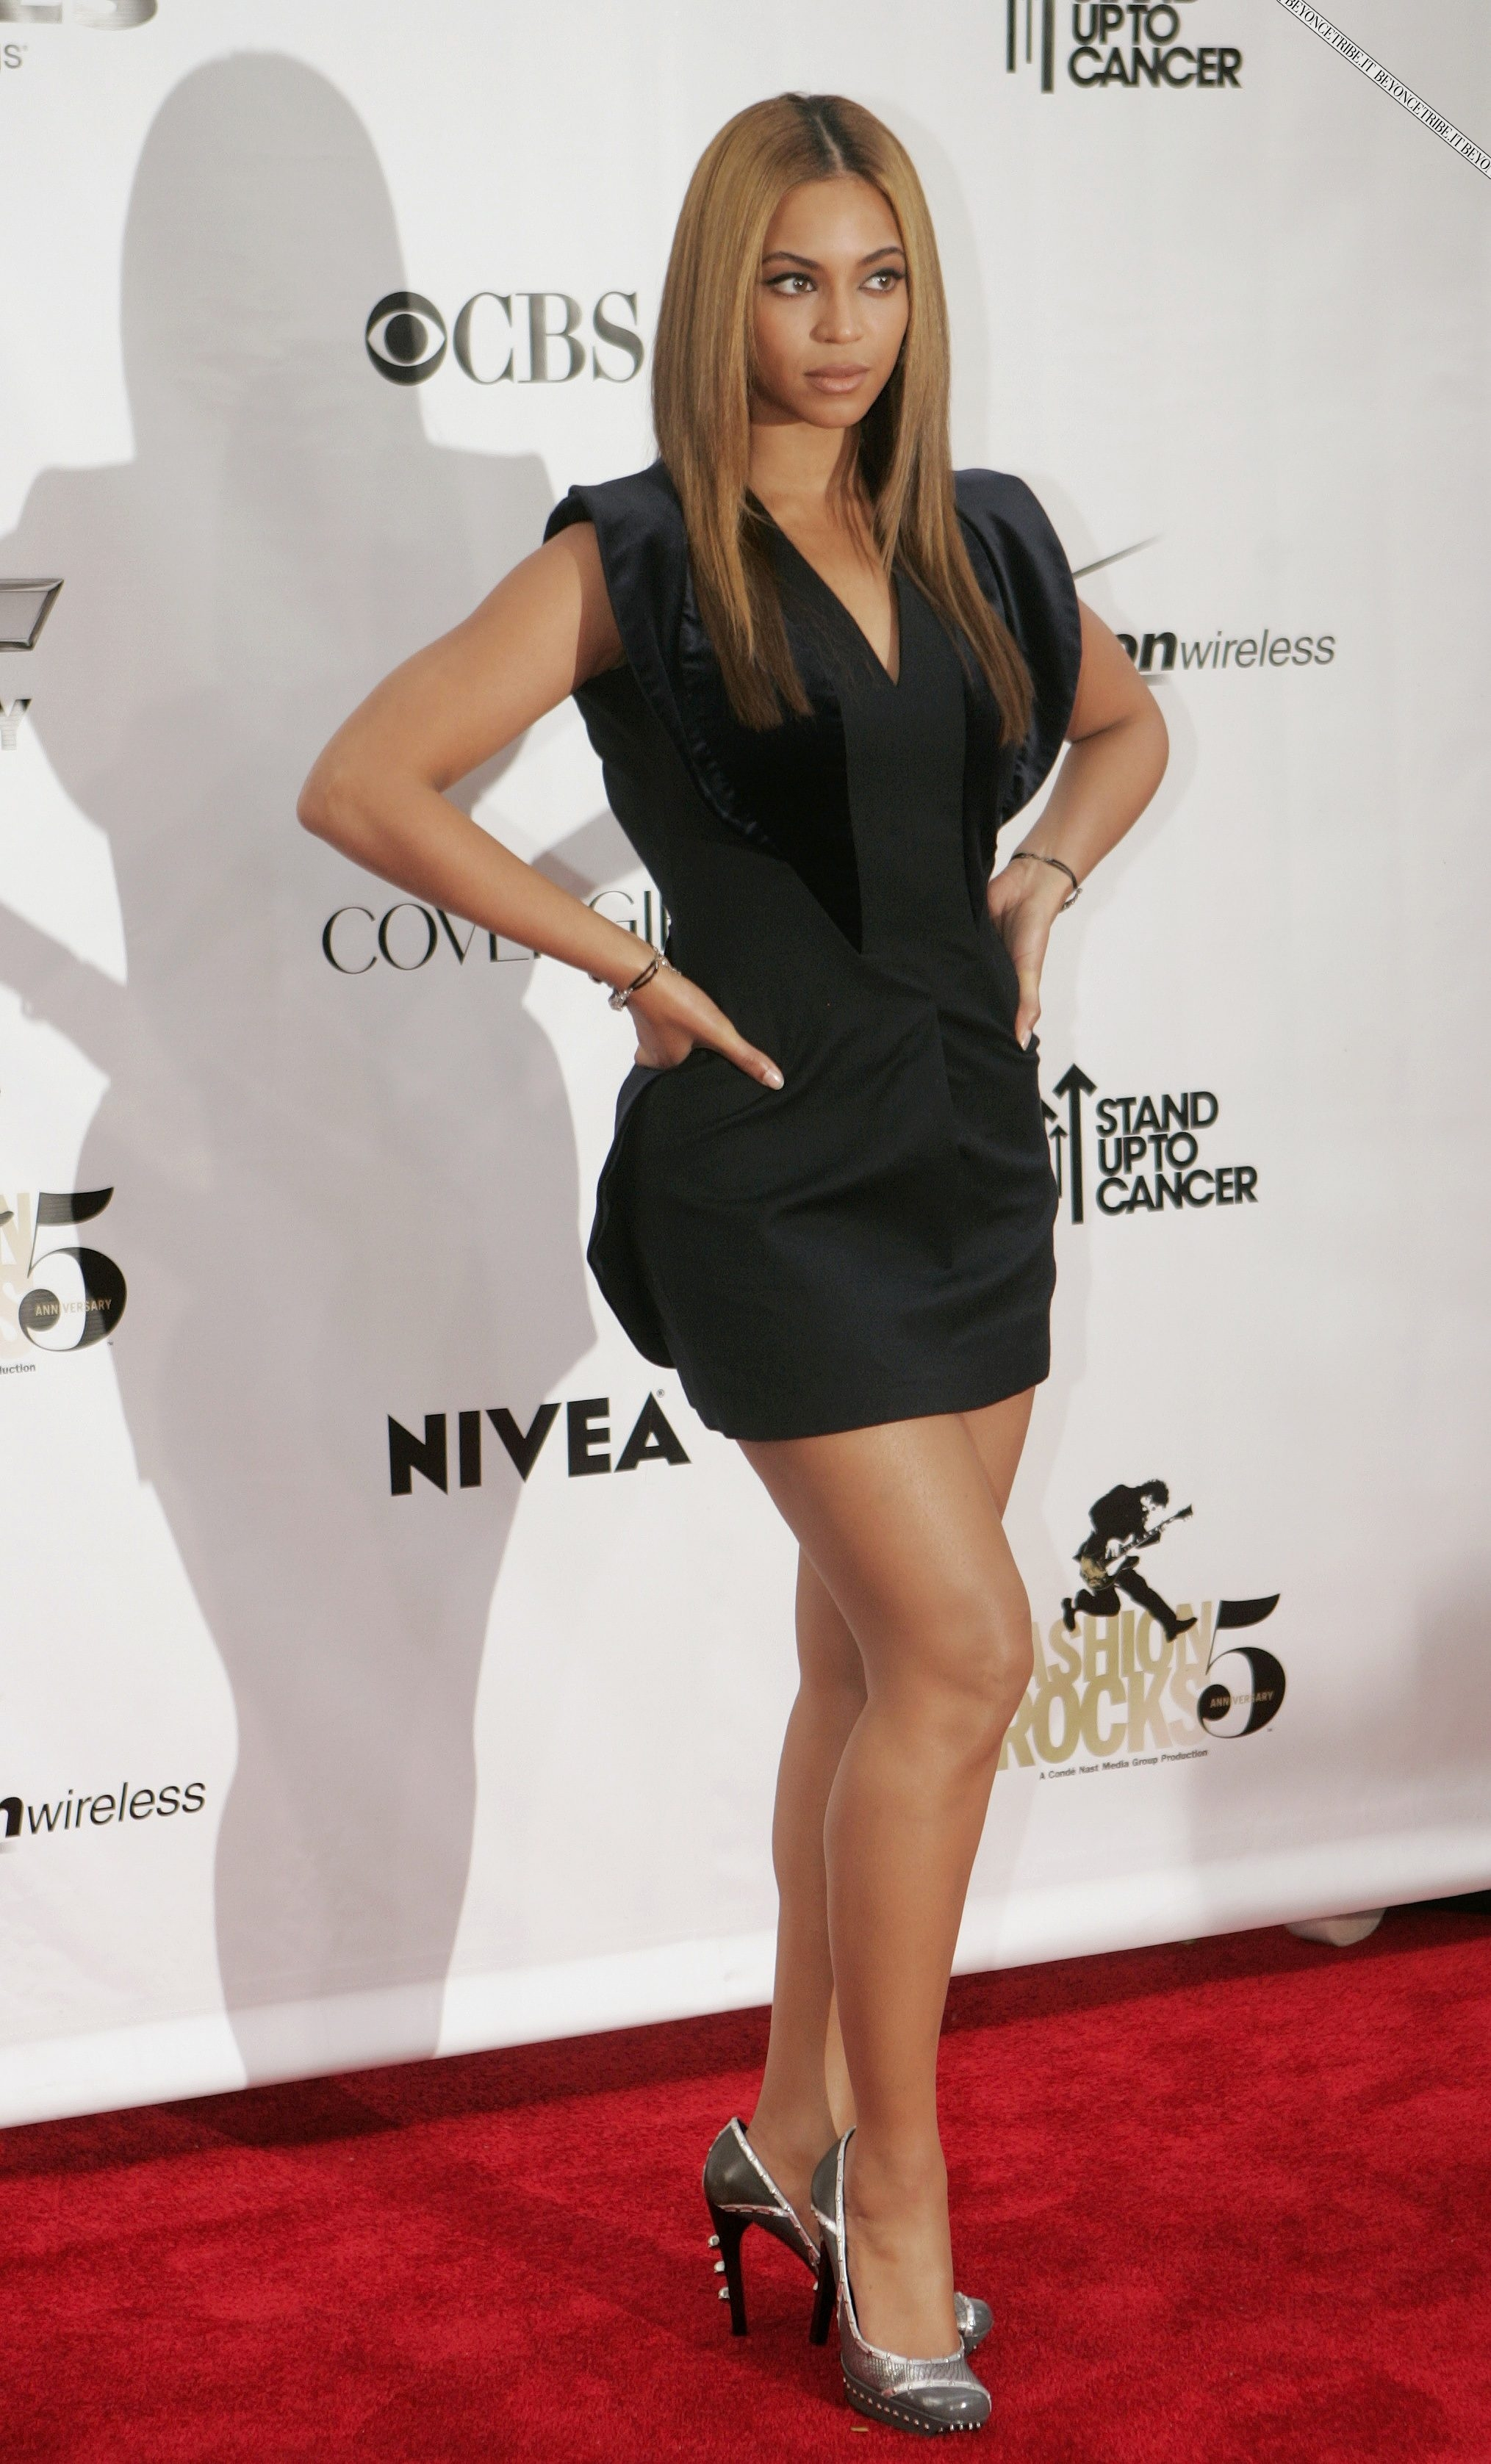 Beyonc red carpet &amp; performance pics on Fashion Rocks in New York  05 sept 2008